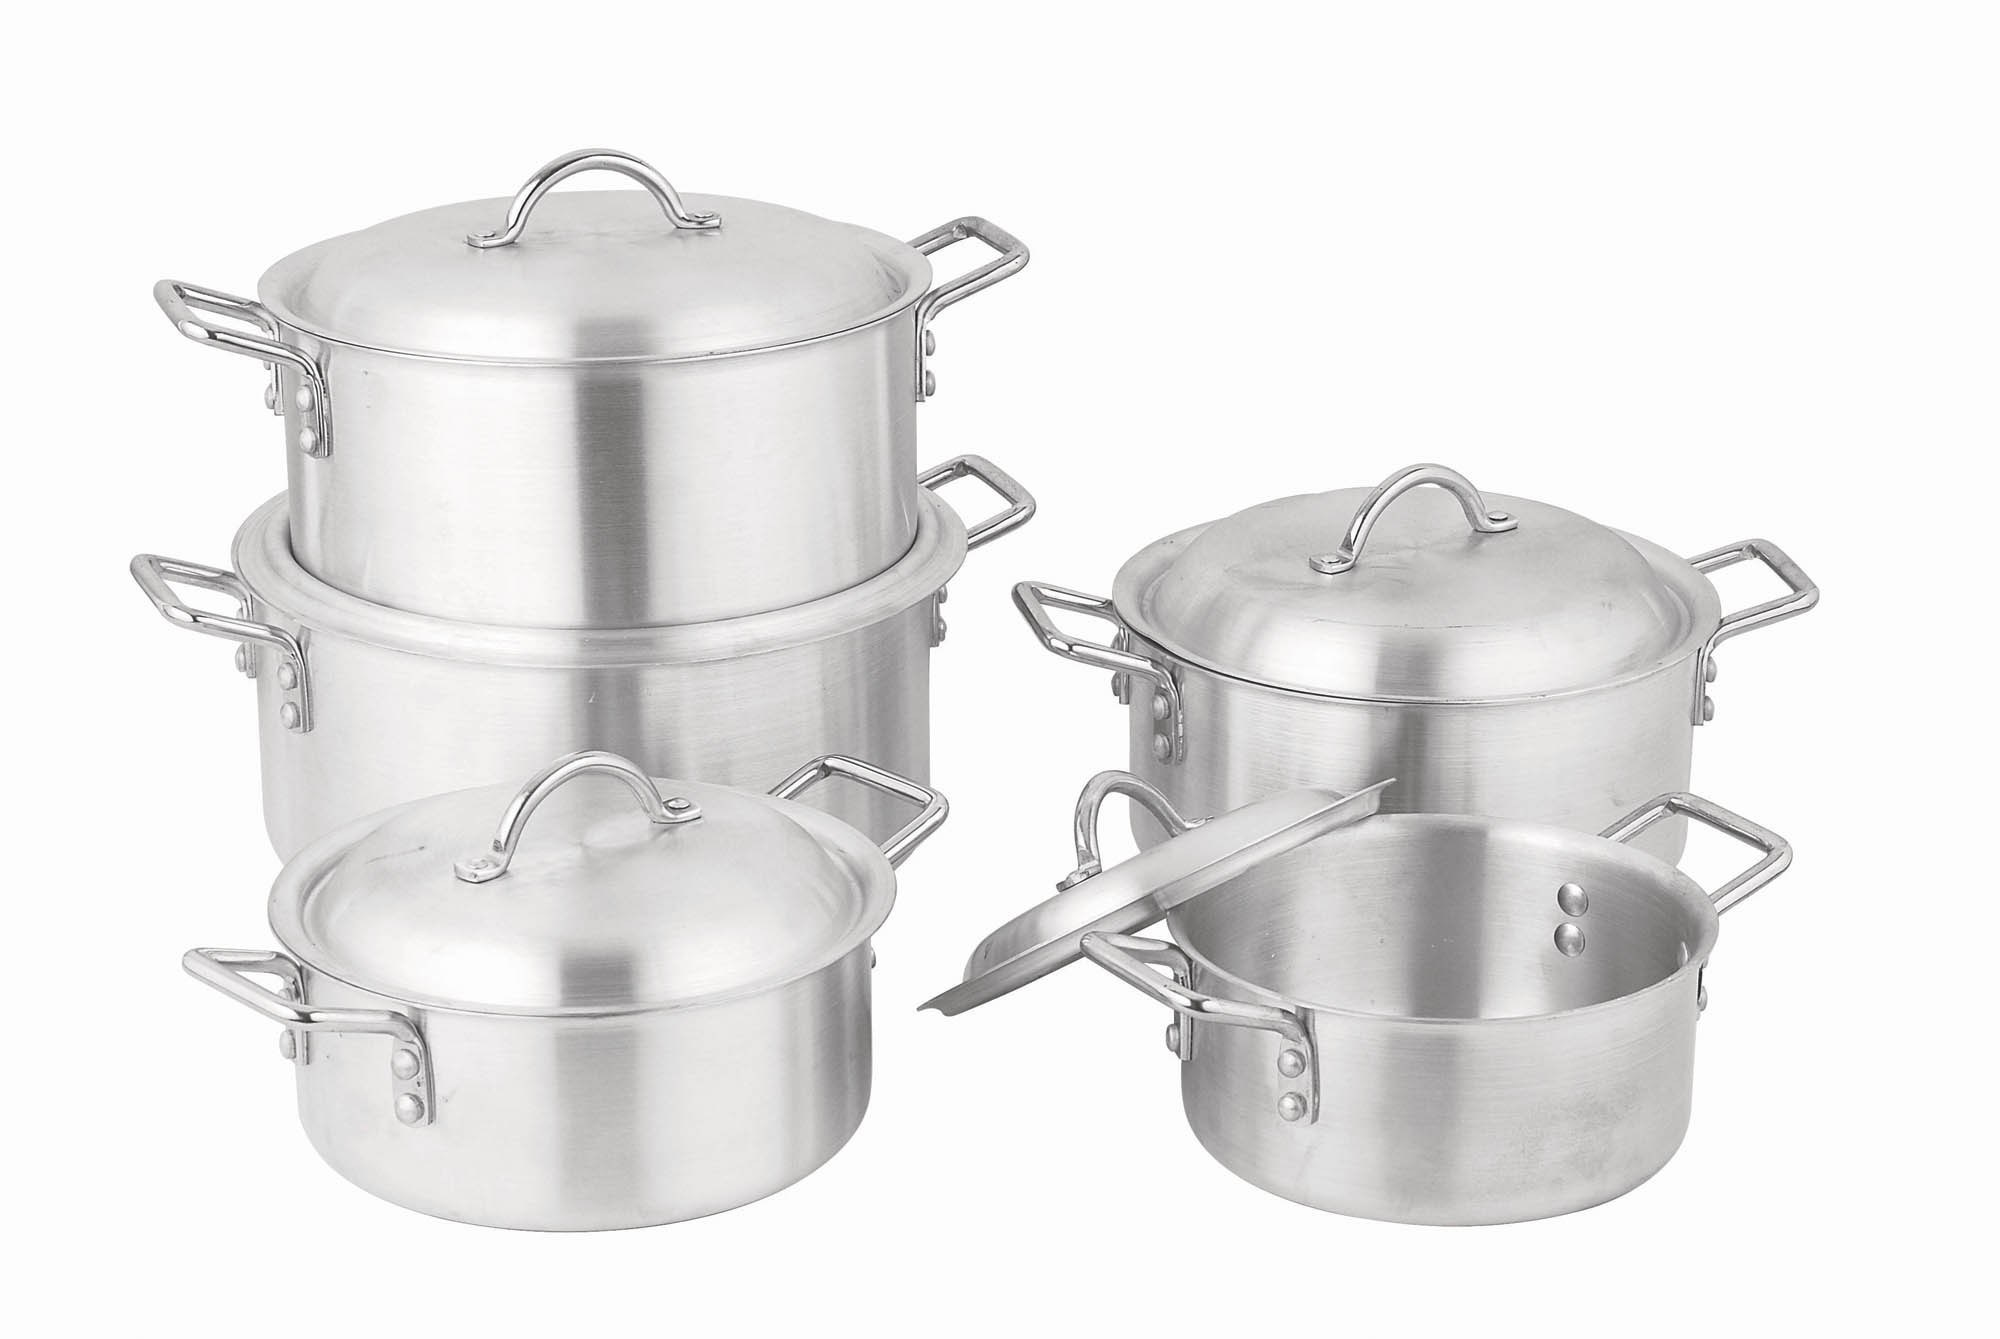 China aluminum cooking pot yk cs011 photos pictures for Aluminum cuisine